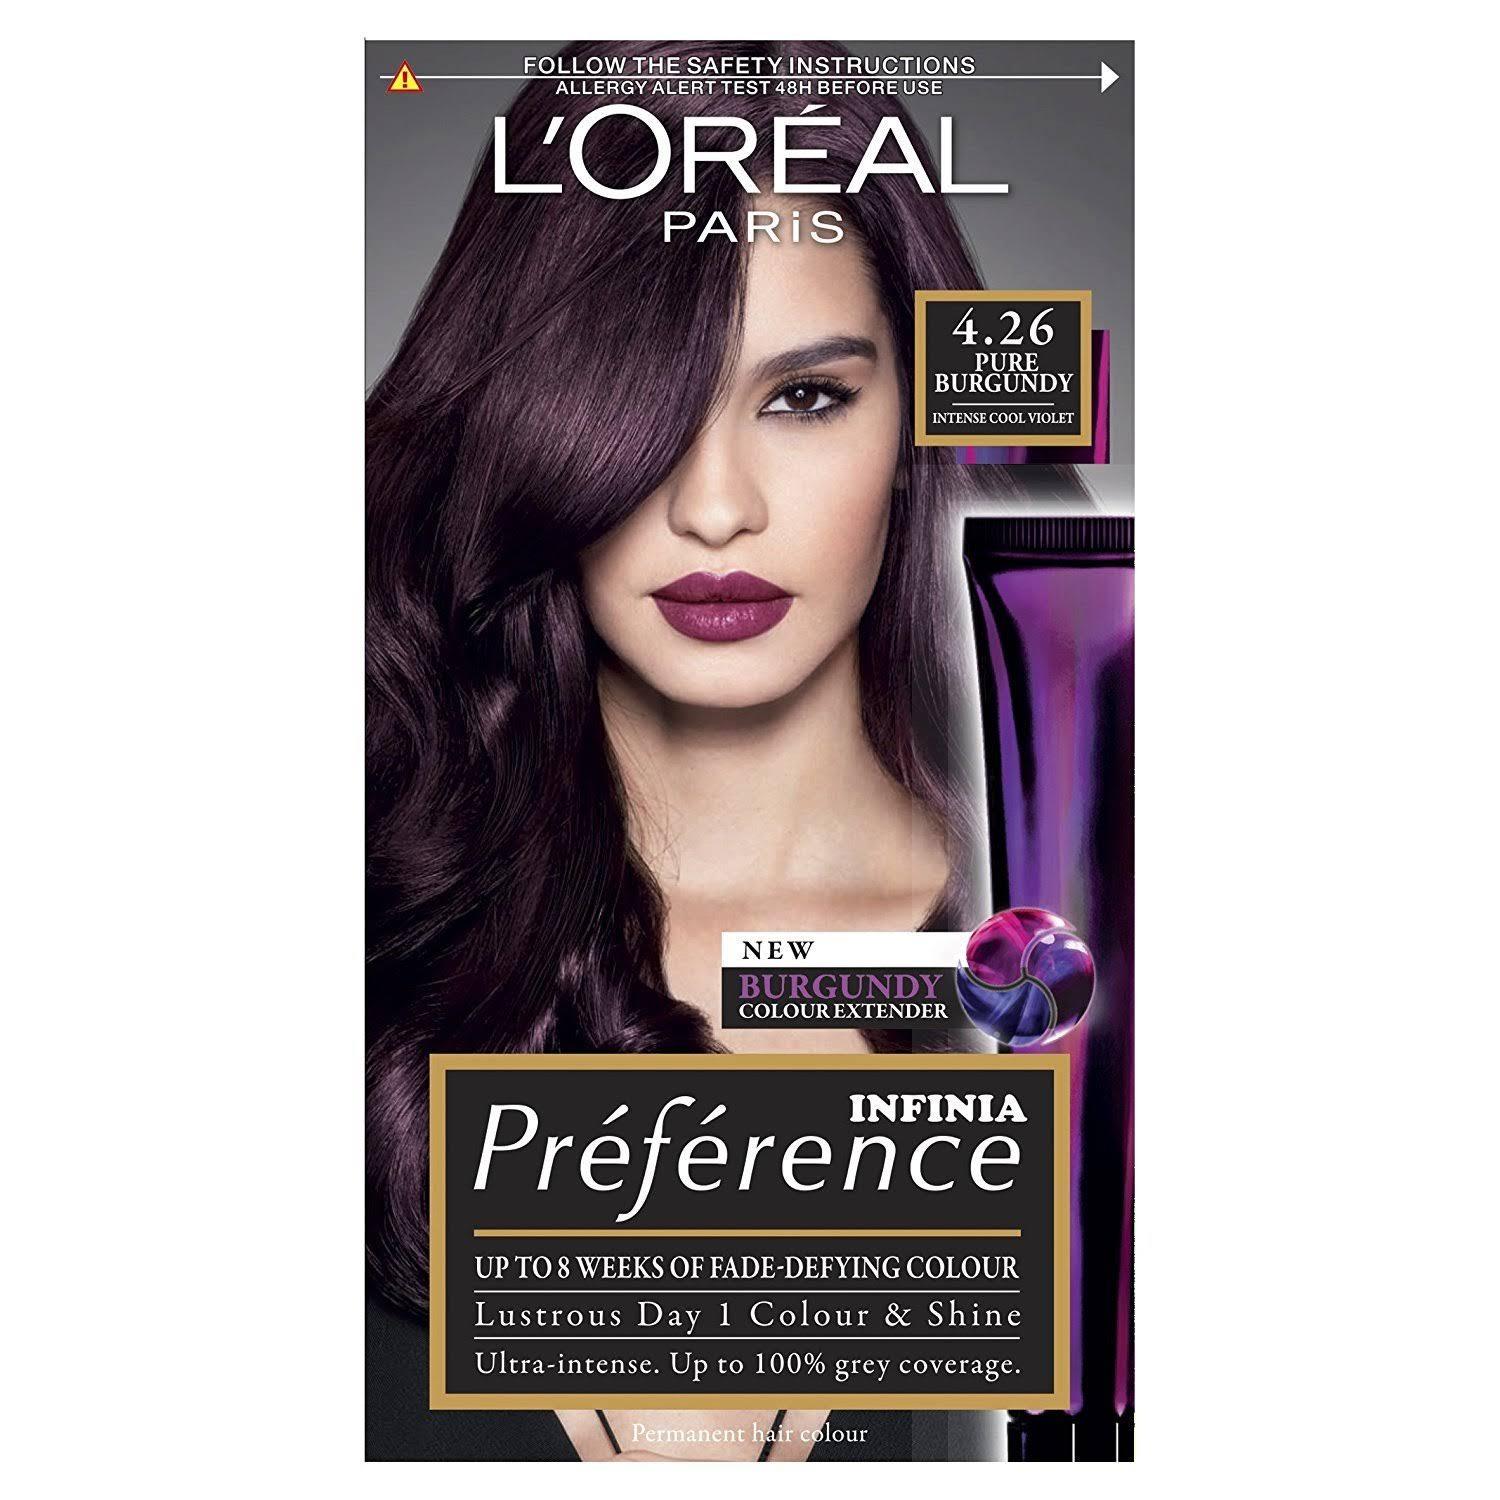 L'Oreal Preference Permanent Hair Dye - 4.26 Pure Burgundy